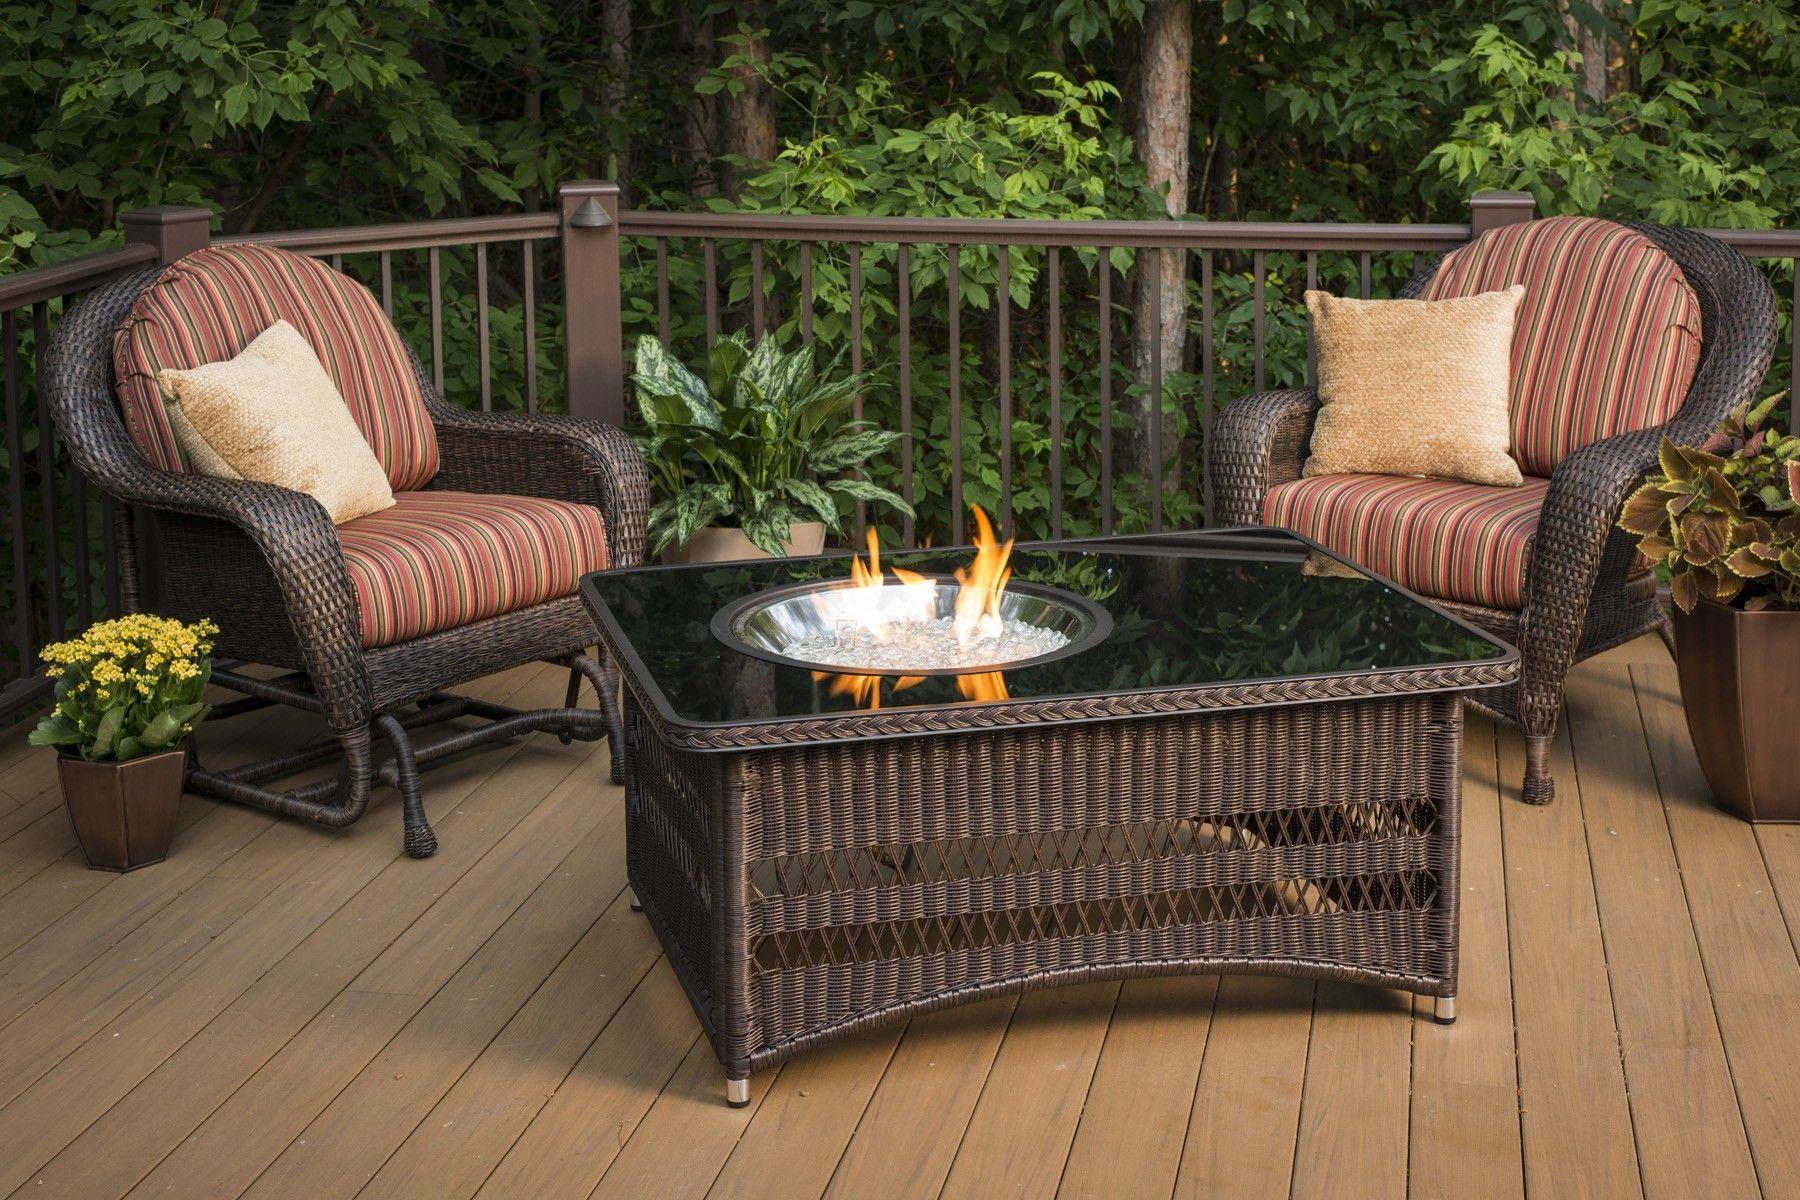 95a098a55b6d772deebd0cde3929941e Top Result 50 Awesome Patio Furniture Naples